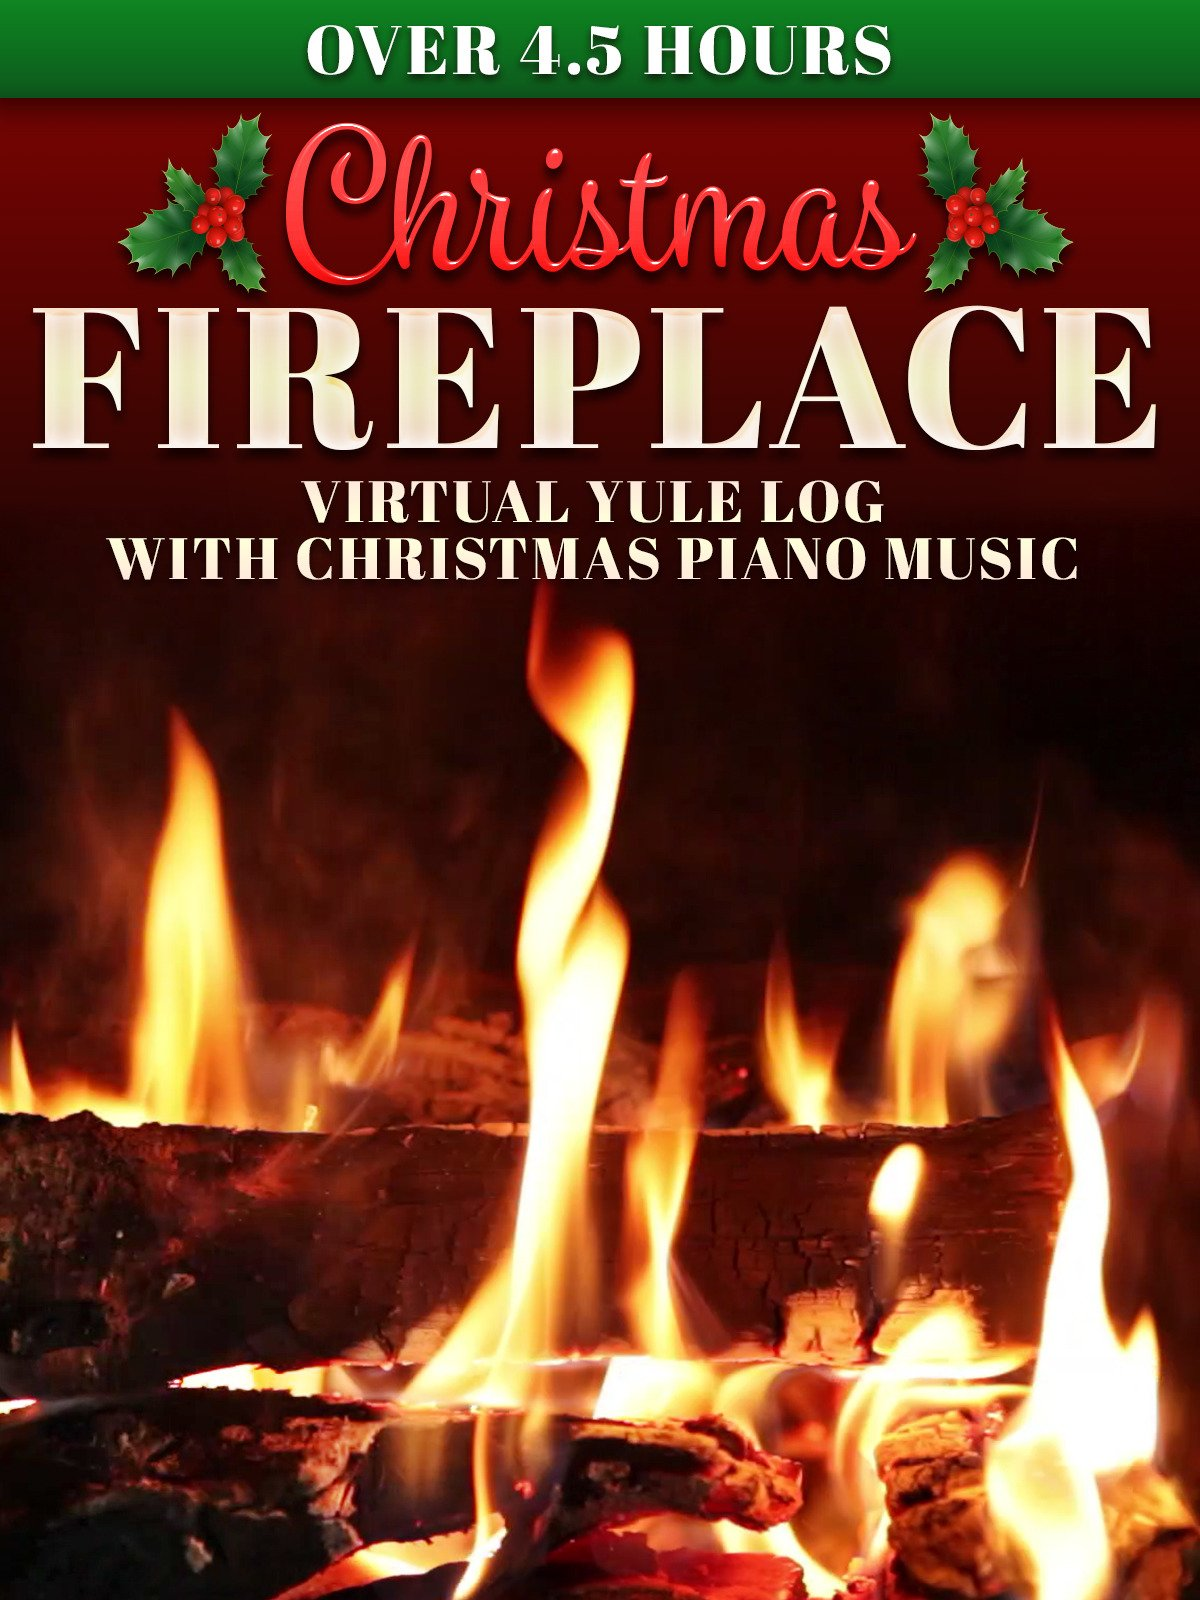 Christmas Fireplace: Virtual Yule Log with Christmas Piano Music